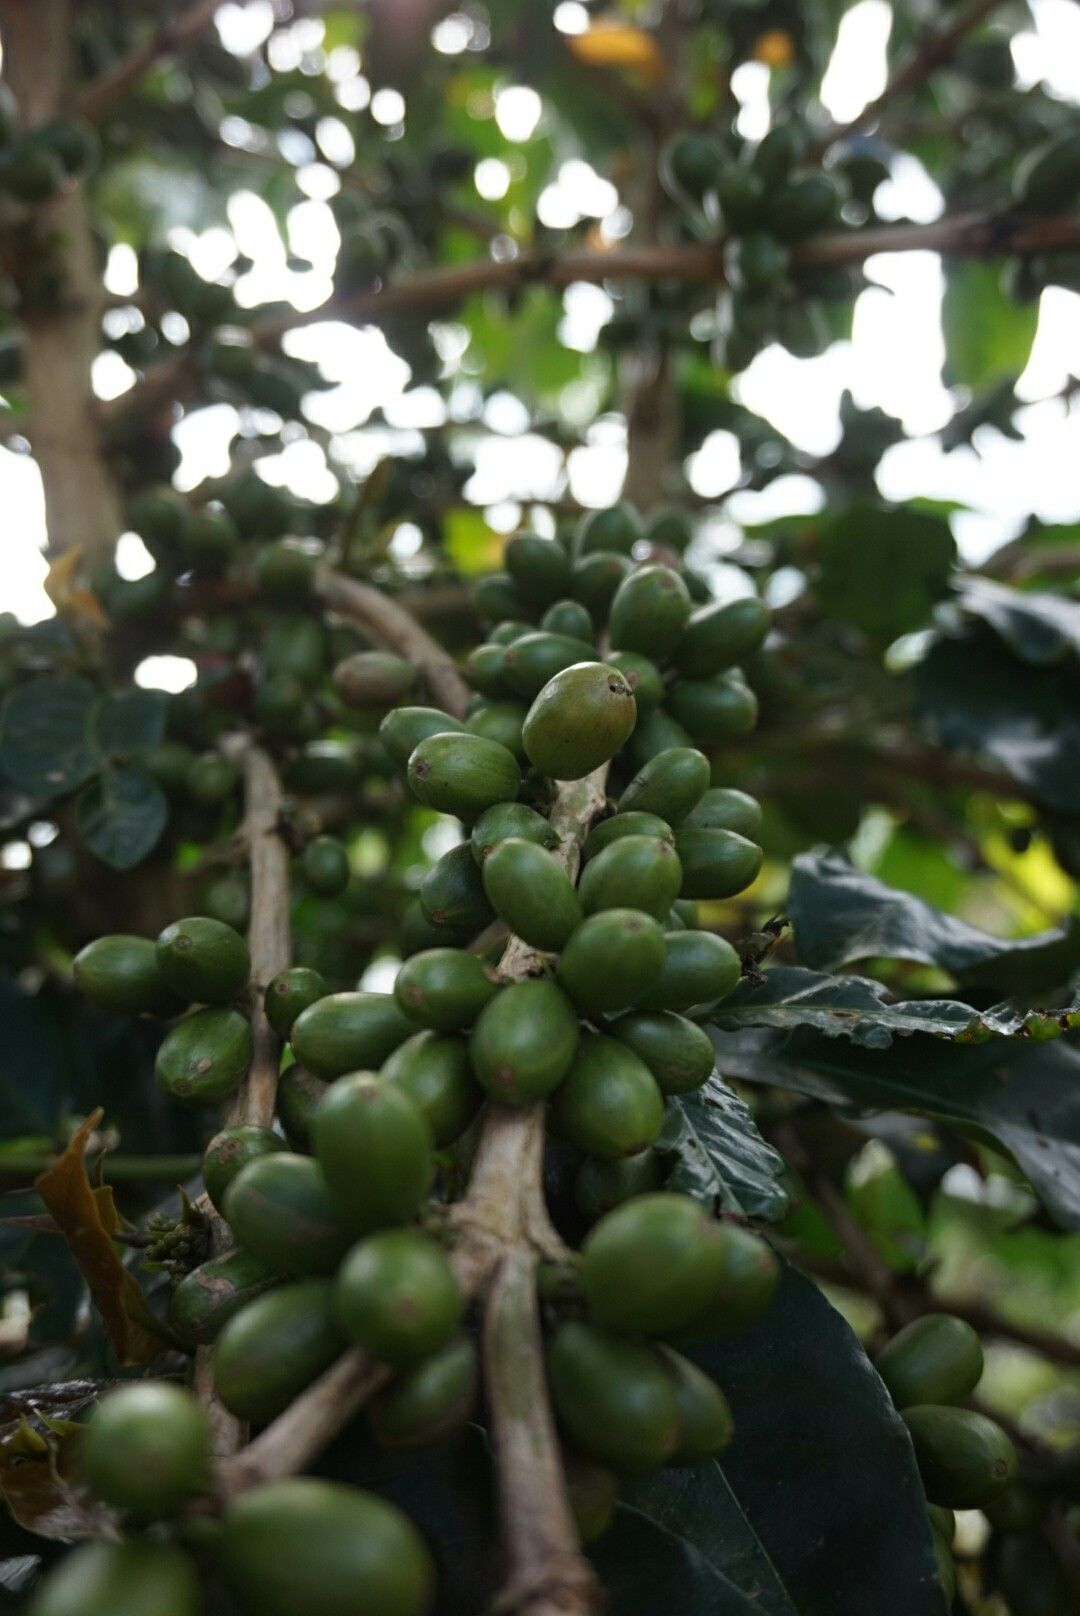 Coffee cherry from ladang isabella,simalungun. By lisa and